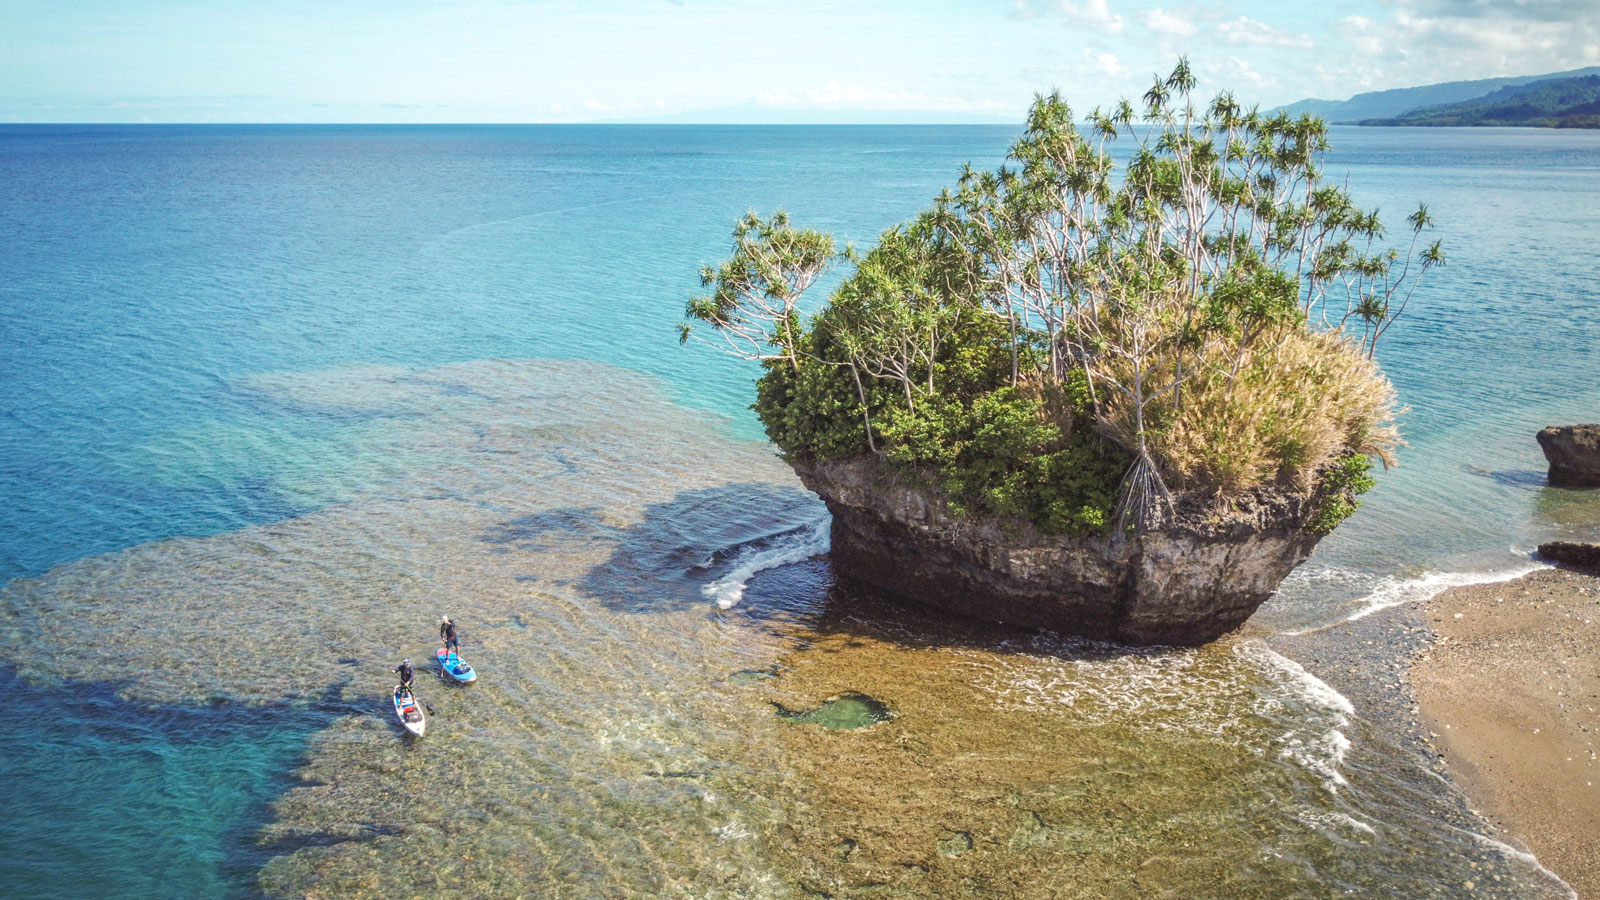 Starboard-SUP-Bart-de-Zwart-Trevor-Tunnington-Explore-the-Islands-of-Vanuatu-by-Stand-Up-Paddleboard-reef-and-island